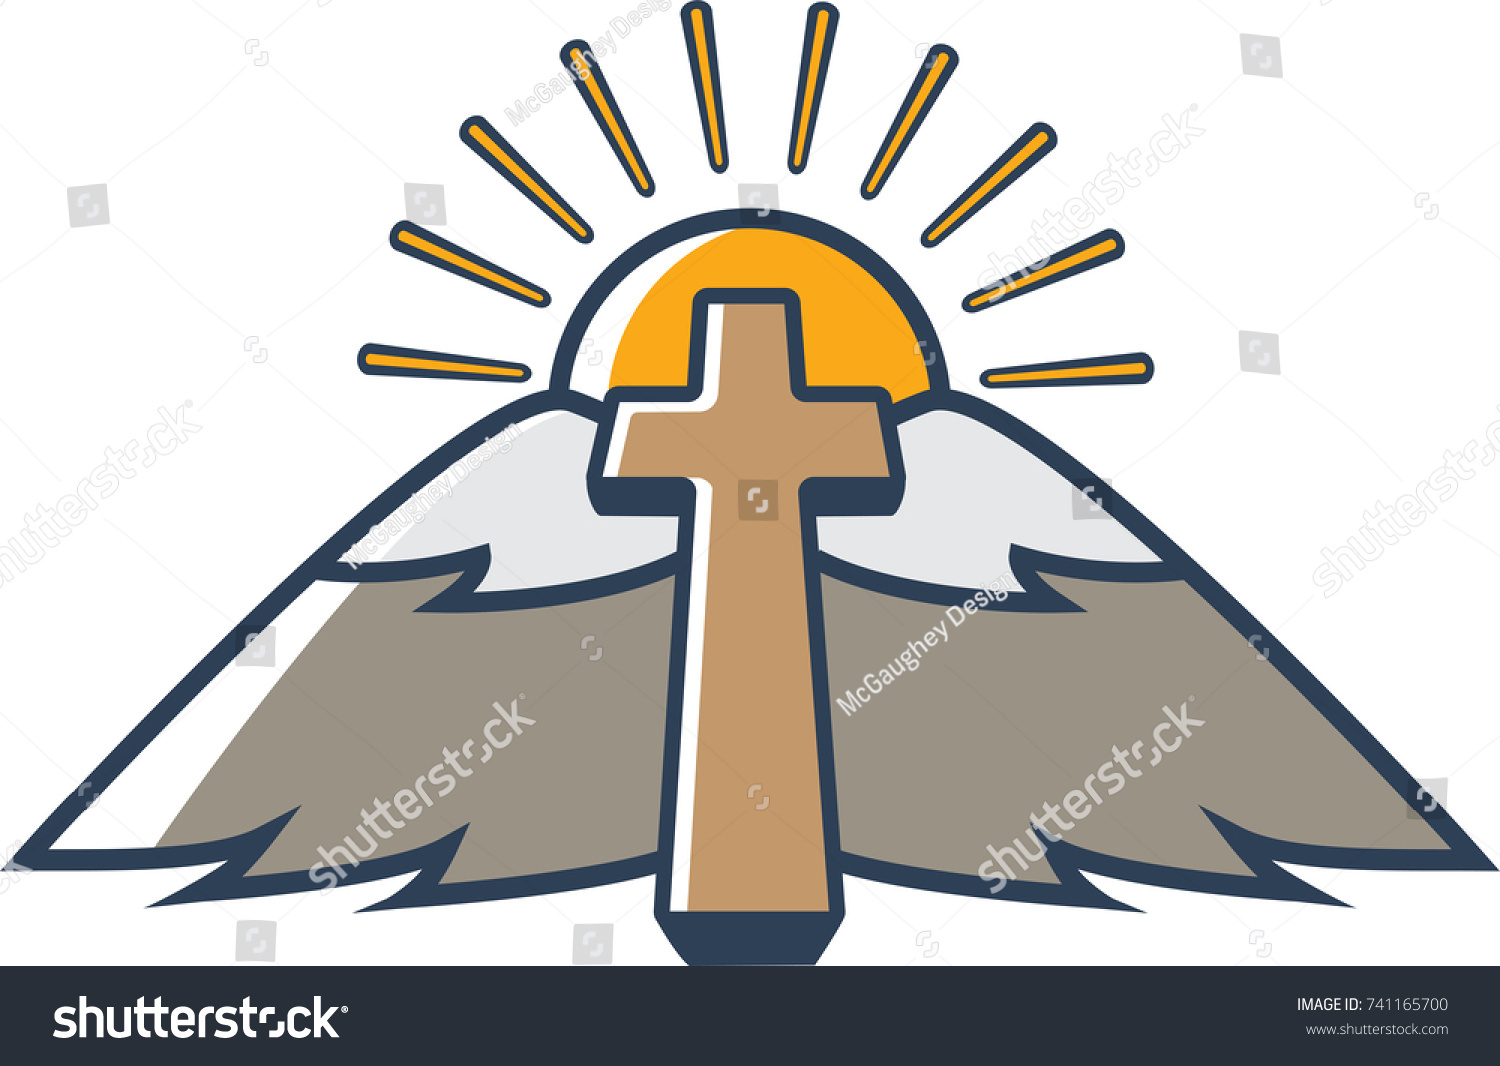 hight resolution of church clipart landscape that looks like wings and halo